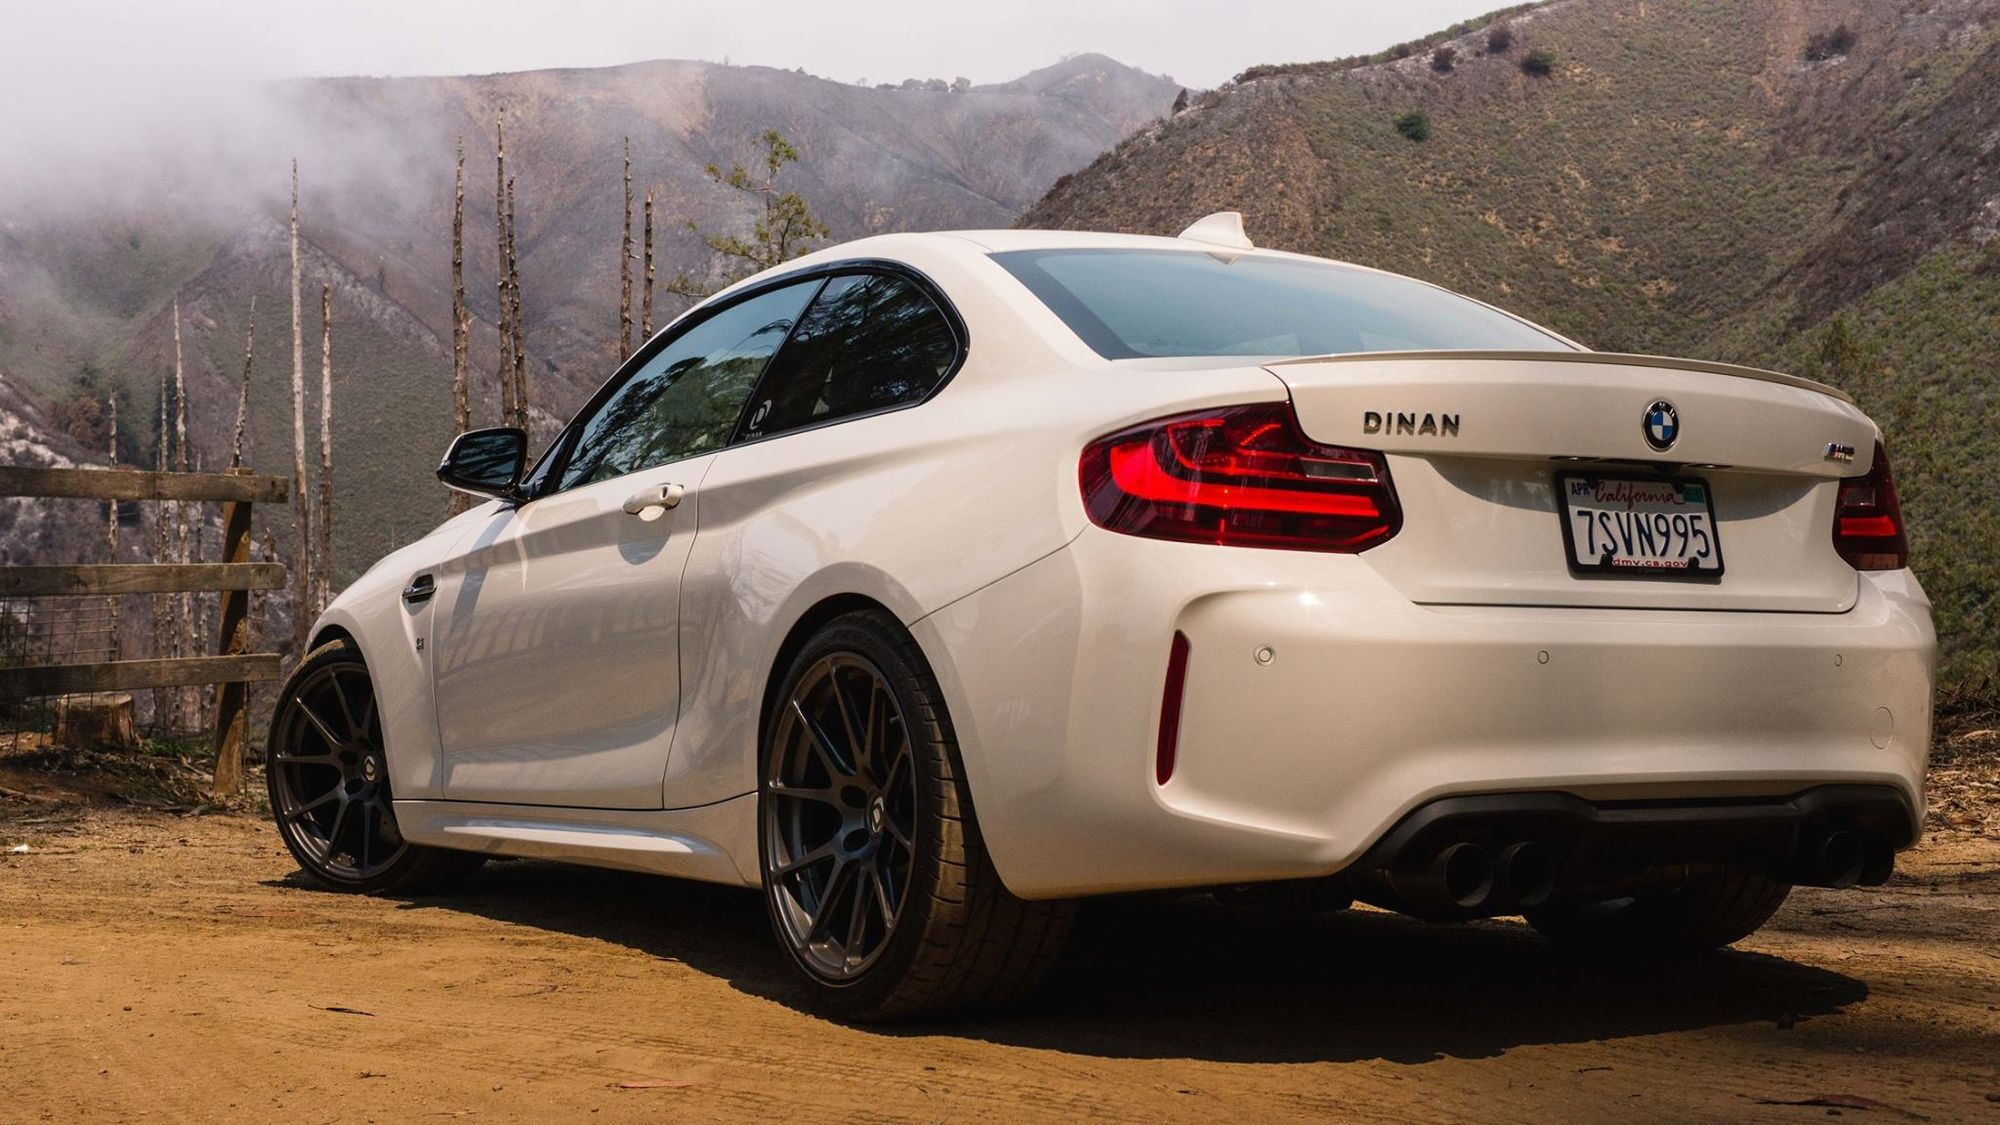 2016 BMW M2 | Dinan Engineering's BMW F87 S1 M2 on Forgeline One Piece Forged Monoblock GA1R Wheels - Rear Shot